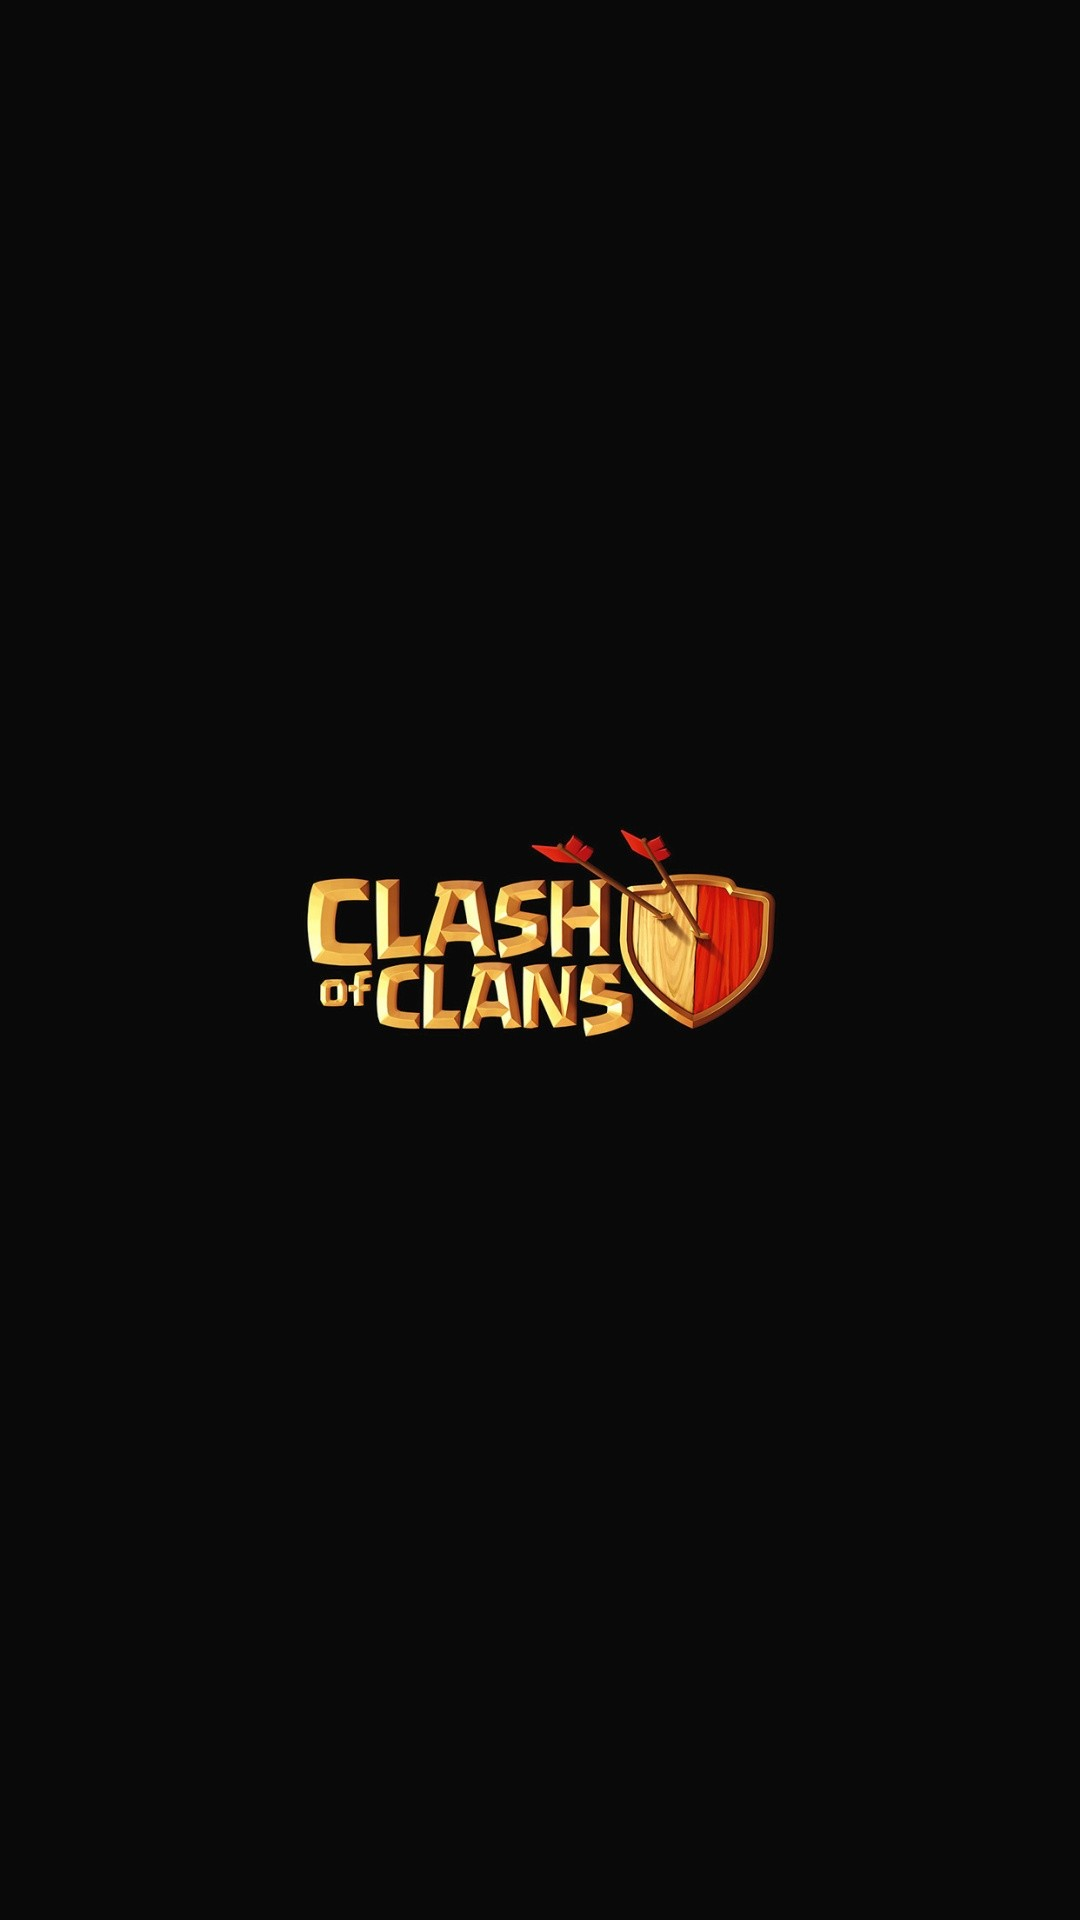 Clash Of Clans Game iPhone 6+ HD Wallpaper – https://freebestpicture.